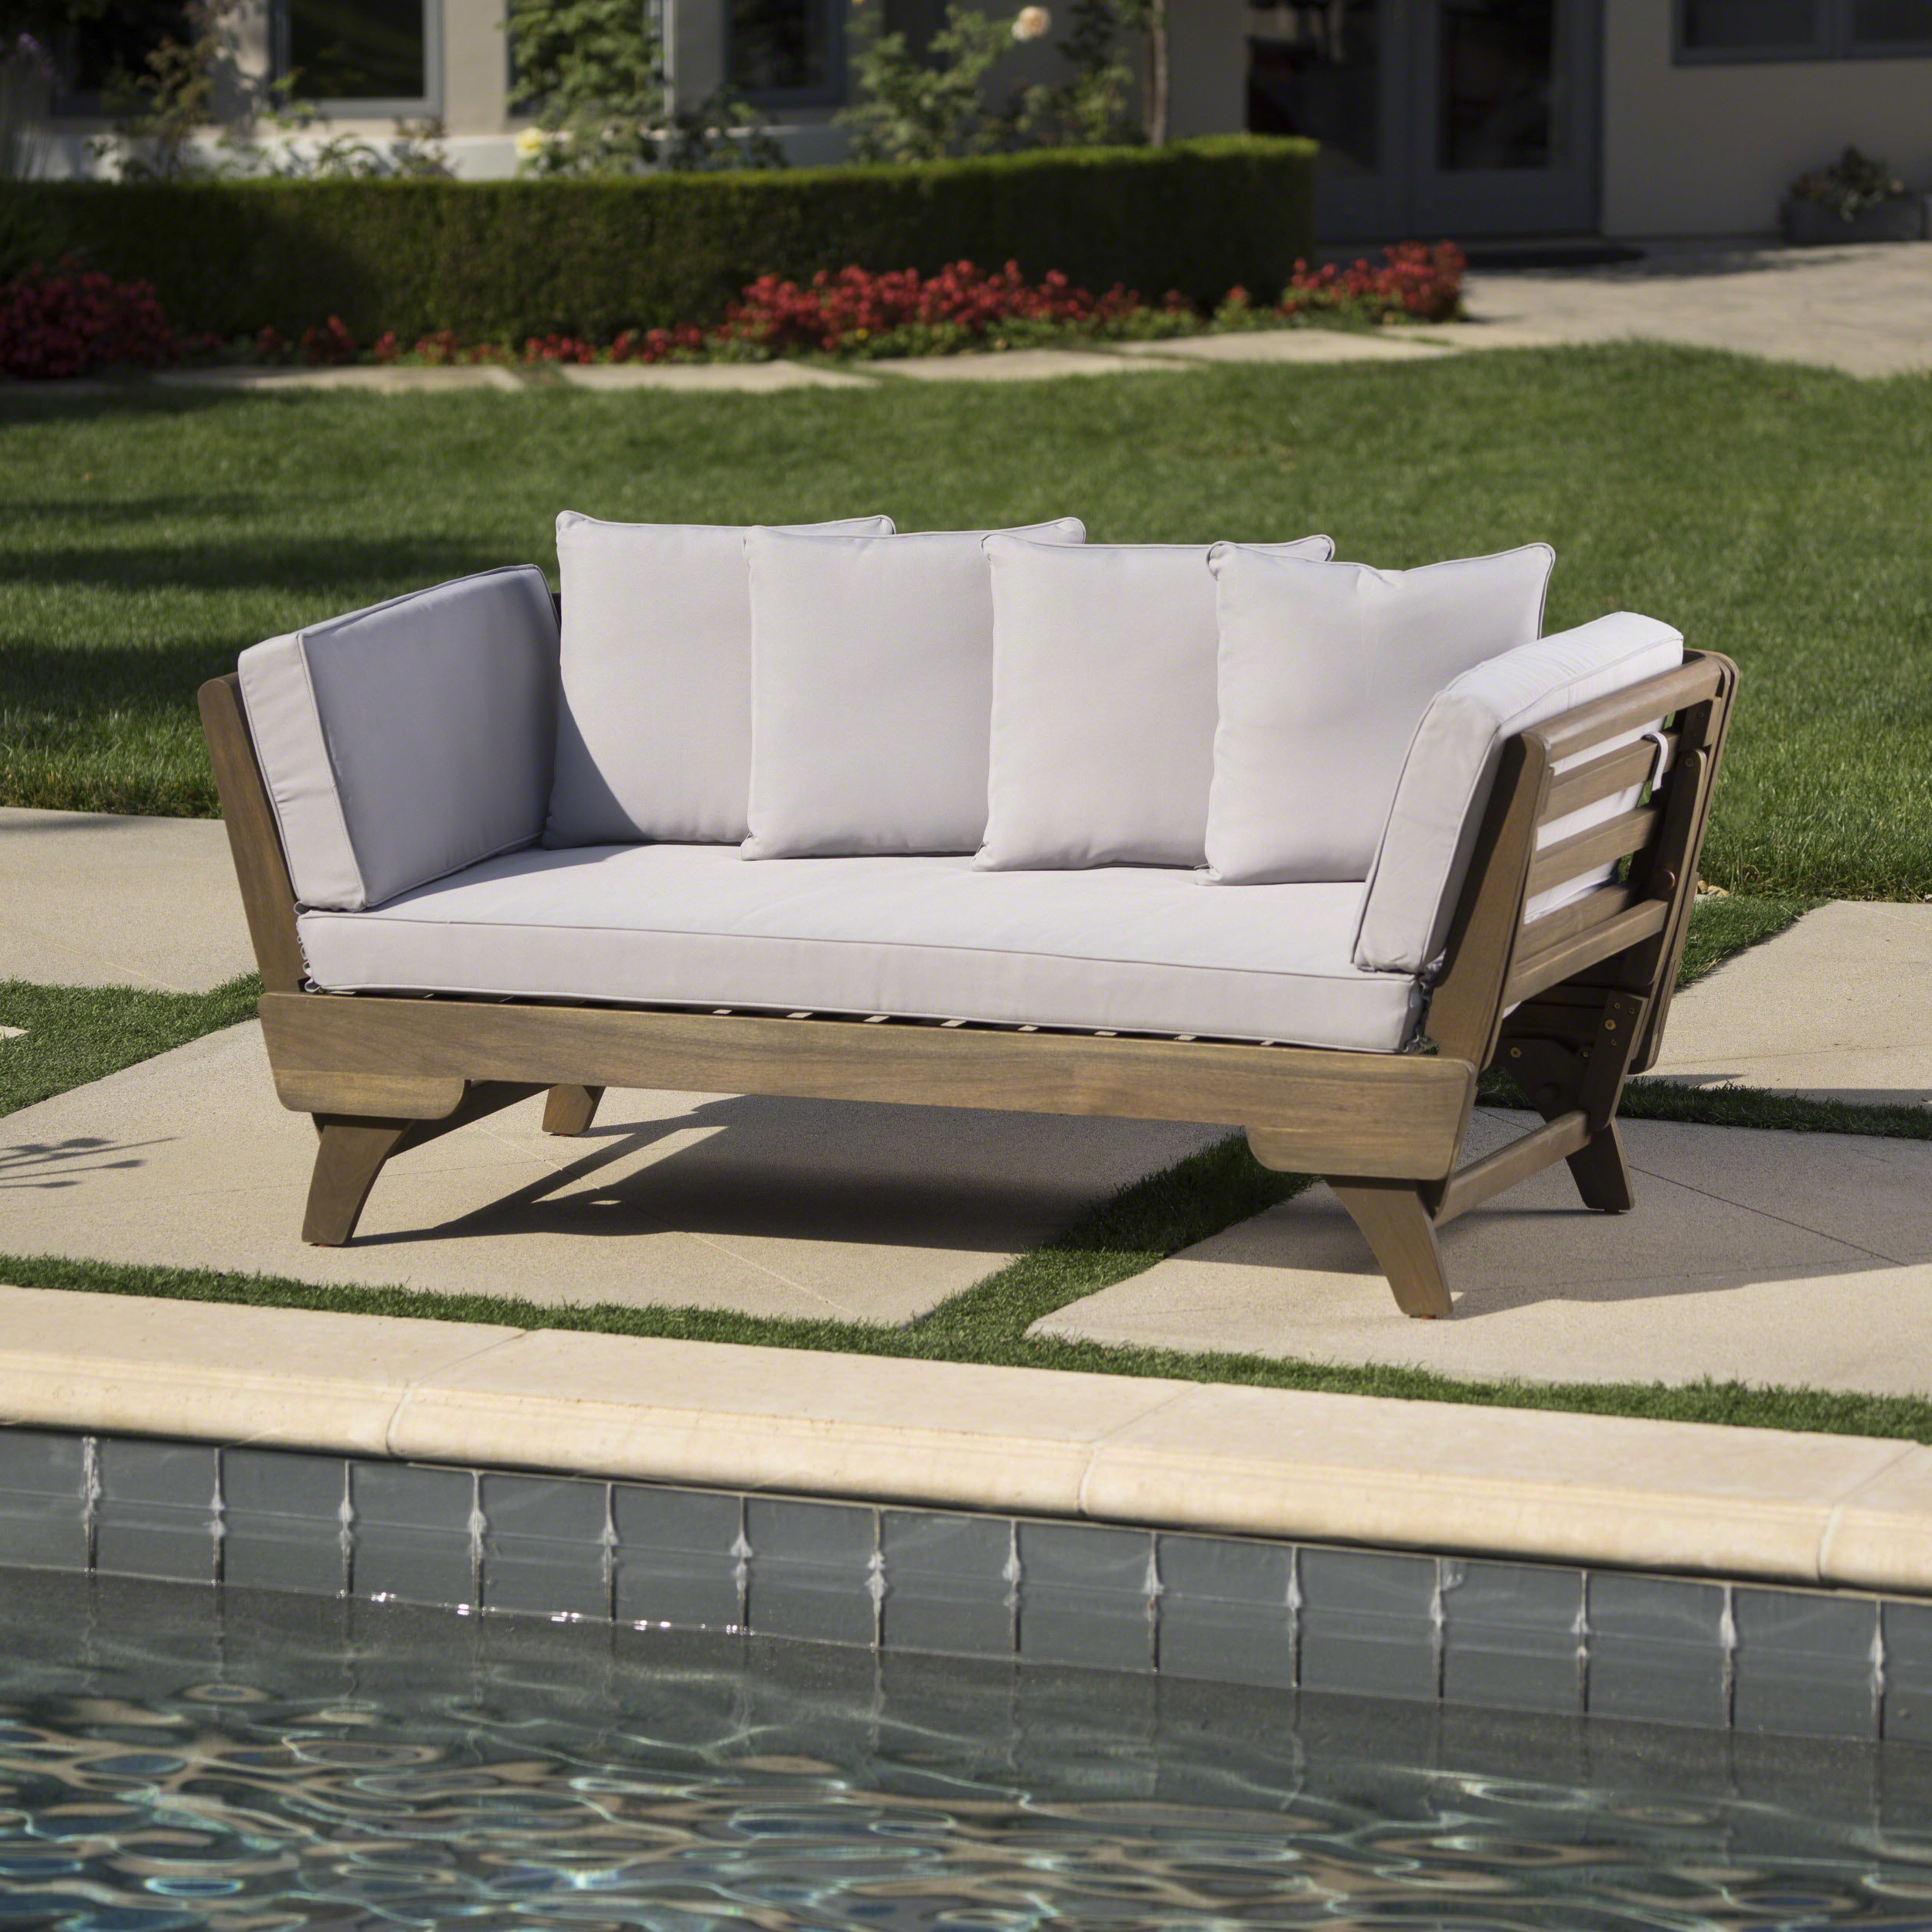 Latest Modern & Contemporary Patio Daybeds You'll Love In 2019 Pertaining To Clary Teak Lounge Patio Daybeds With Cushion (View 12 of 20)